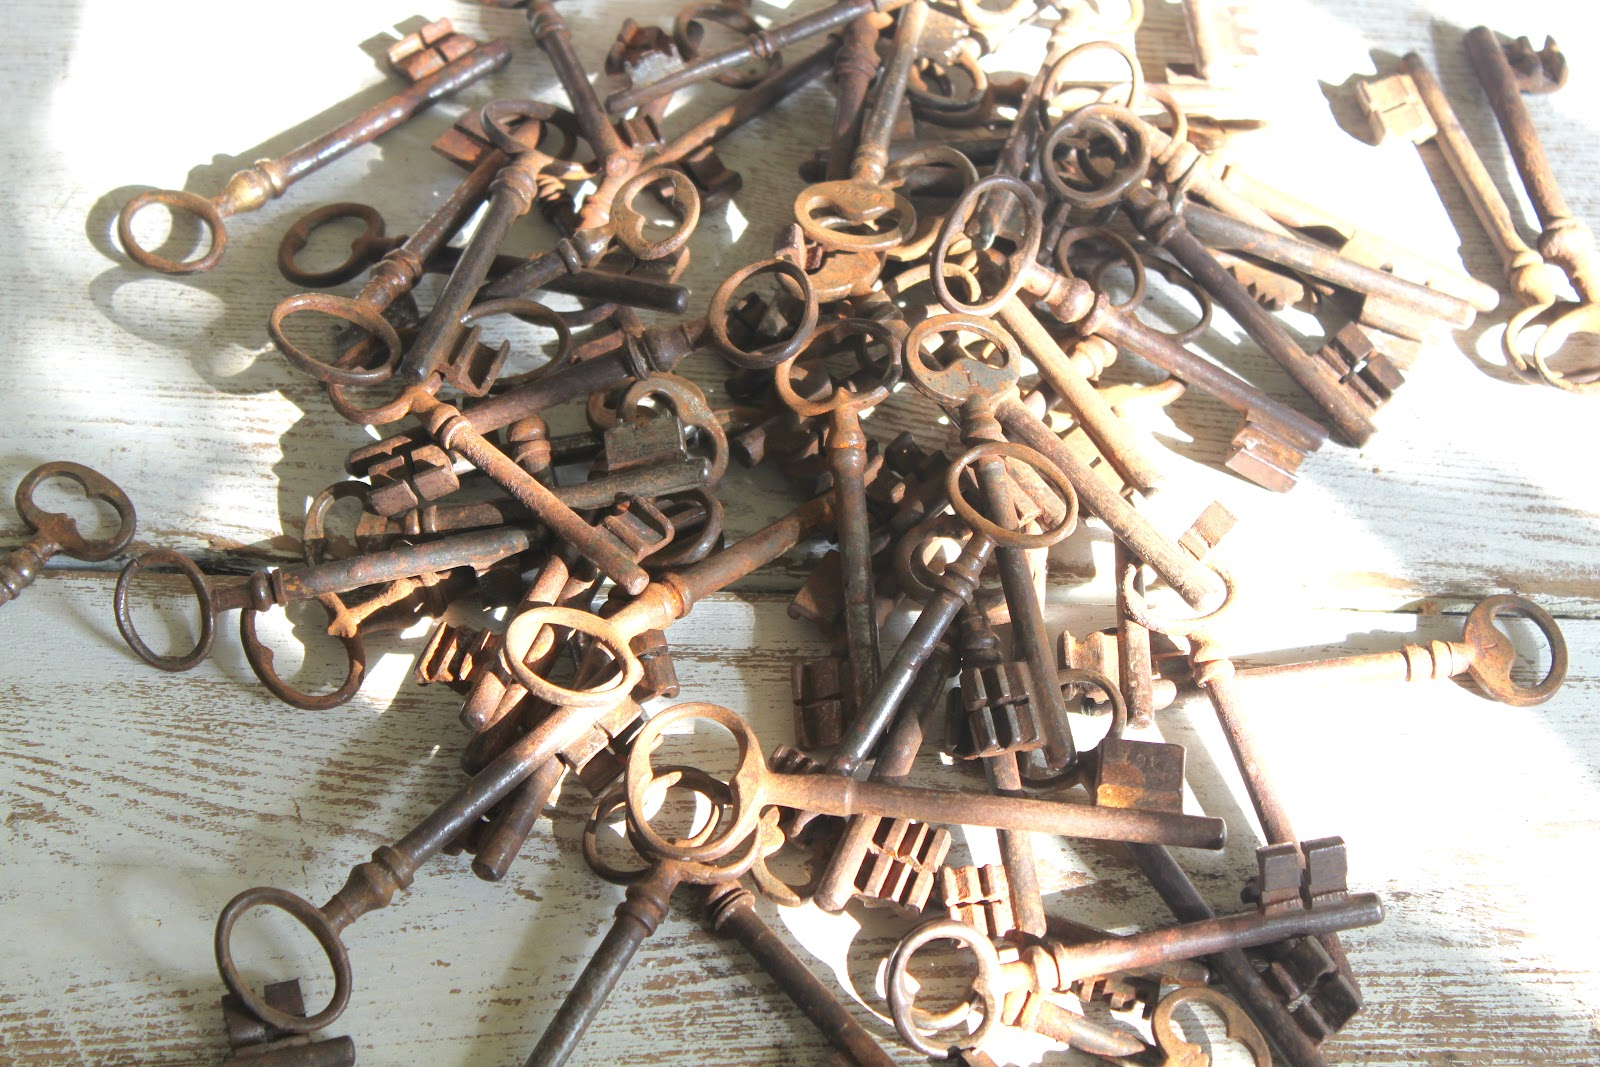 52 flea 71 keys and more for Table induction 71 x 52